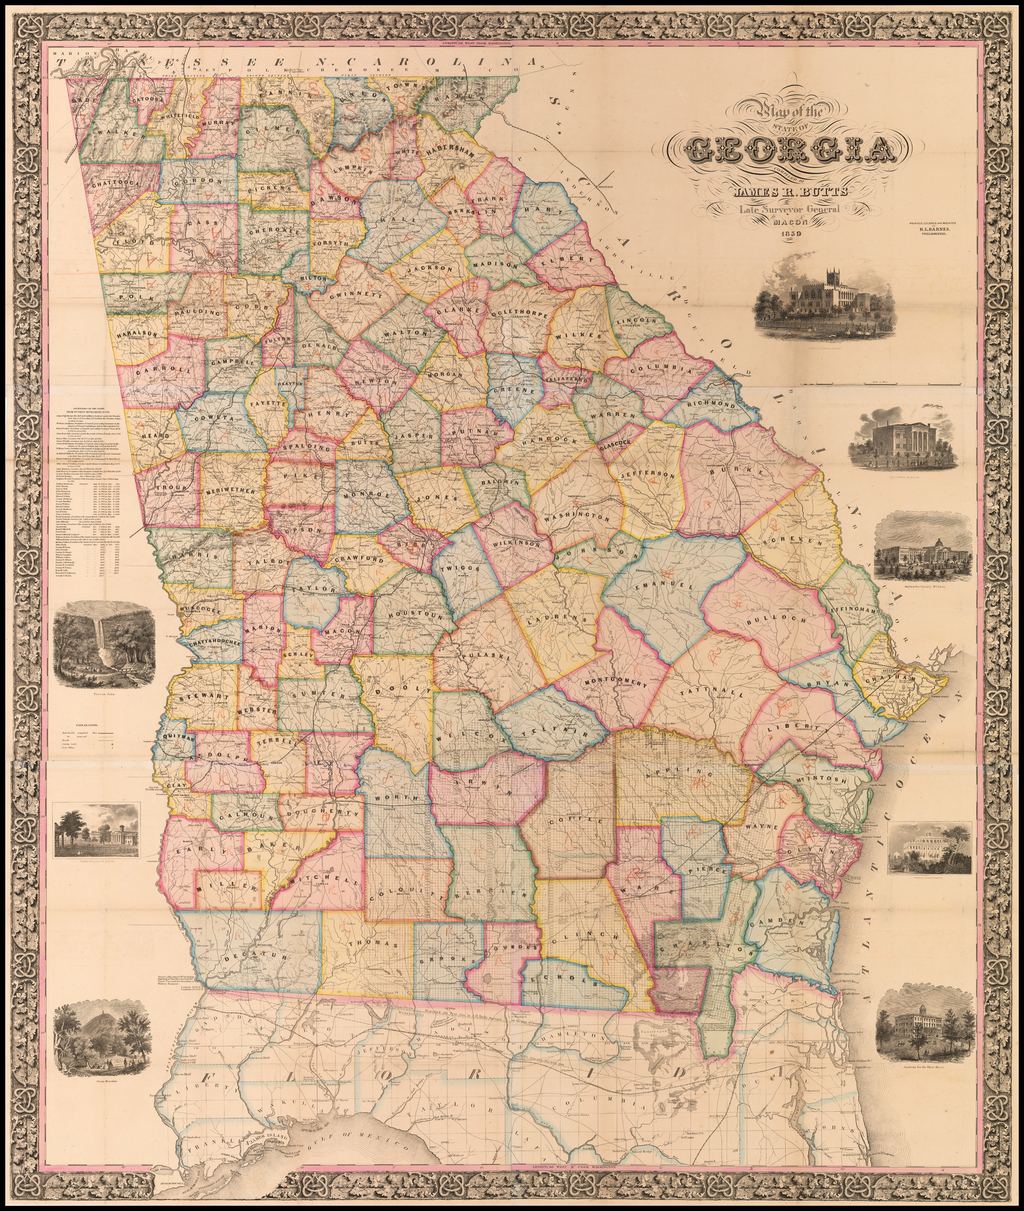 Map of the State of Georgia Compiled By James R. Butts Late Surveyor General Macon 1859 [Owned by 2 Confederate Generals and 2 Union Generals] By James R. Butts